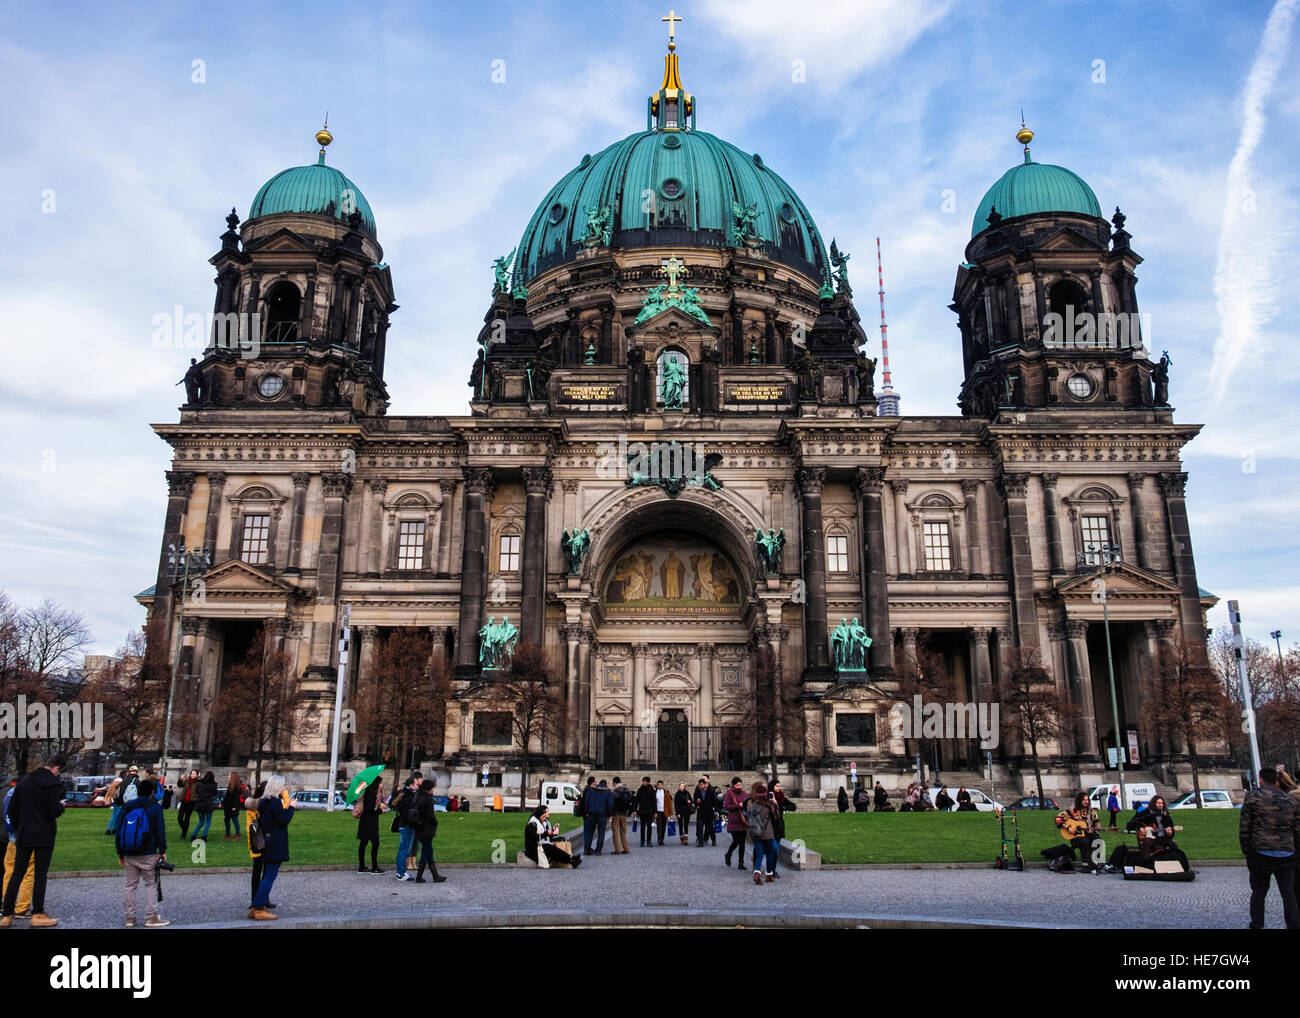 Berlin Cathedral, Berliner Dom. High Renaissance Baroque classical style historic church building exterior Stock Photo